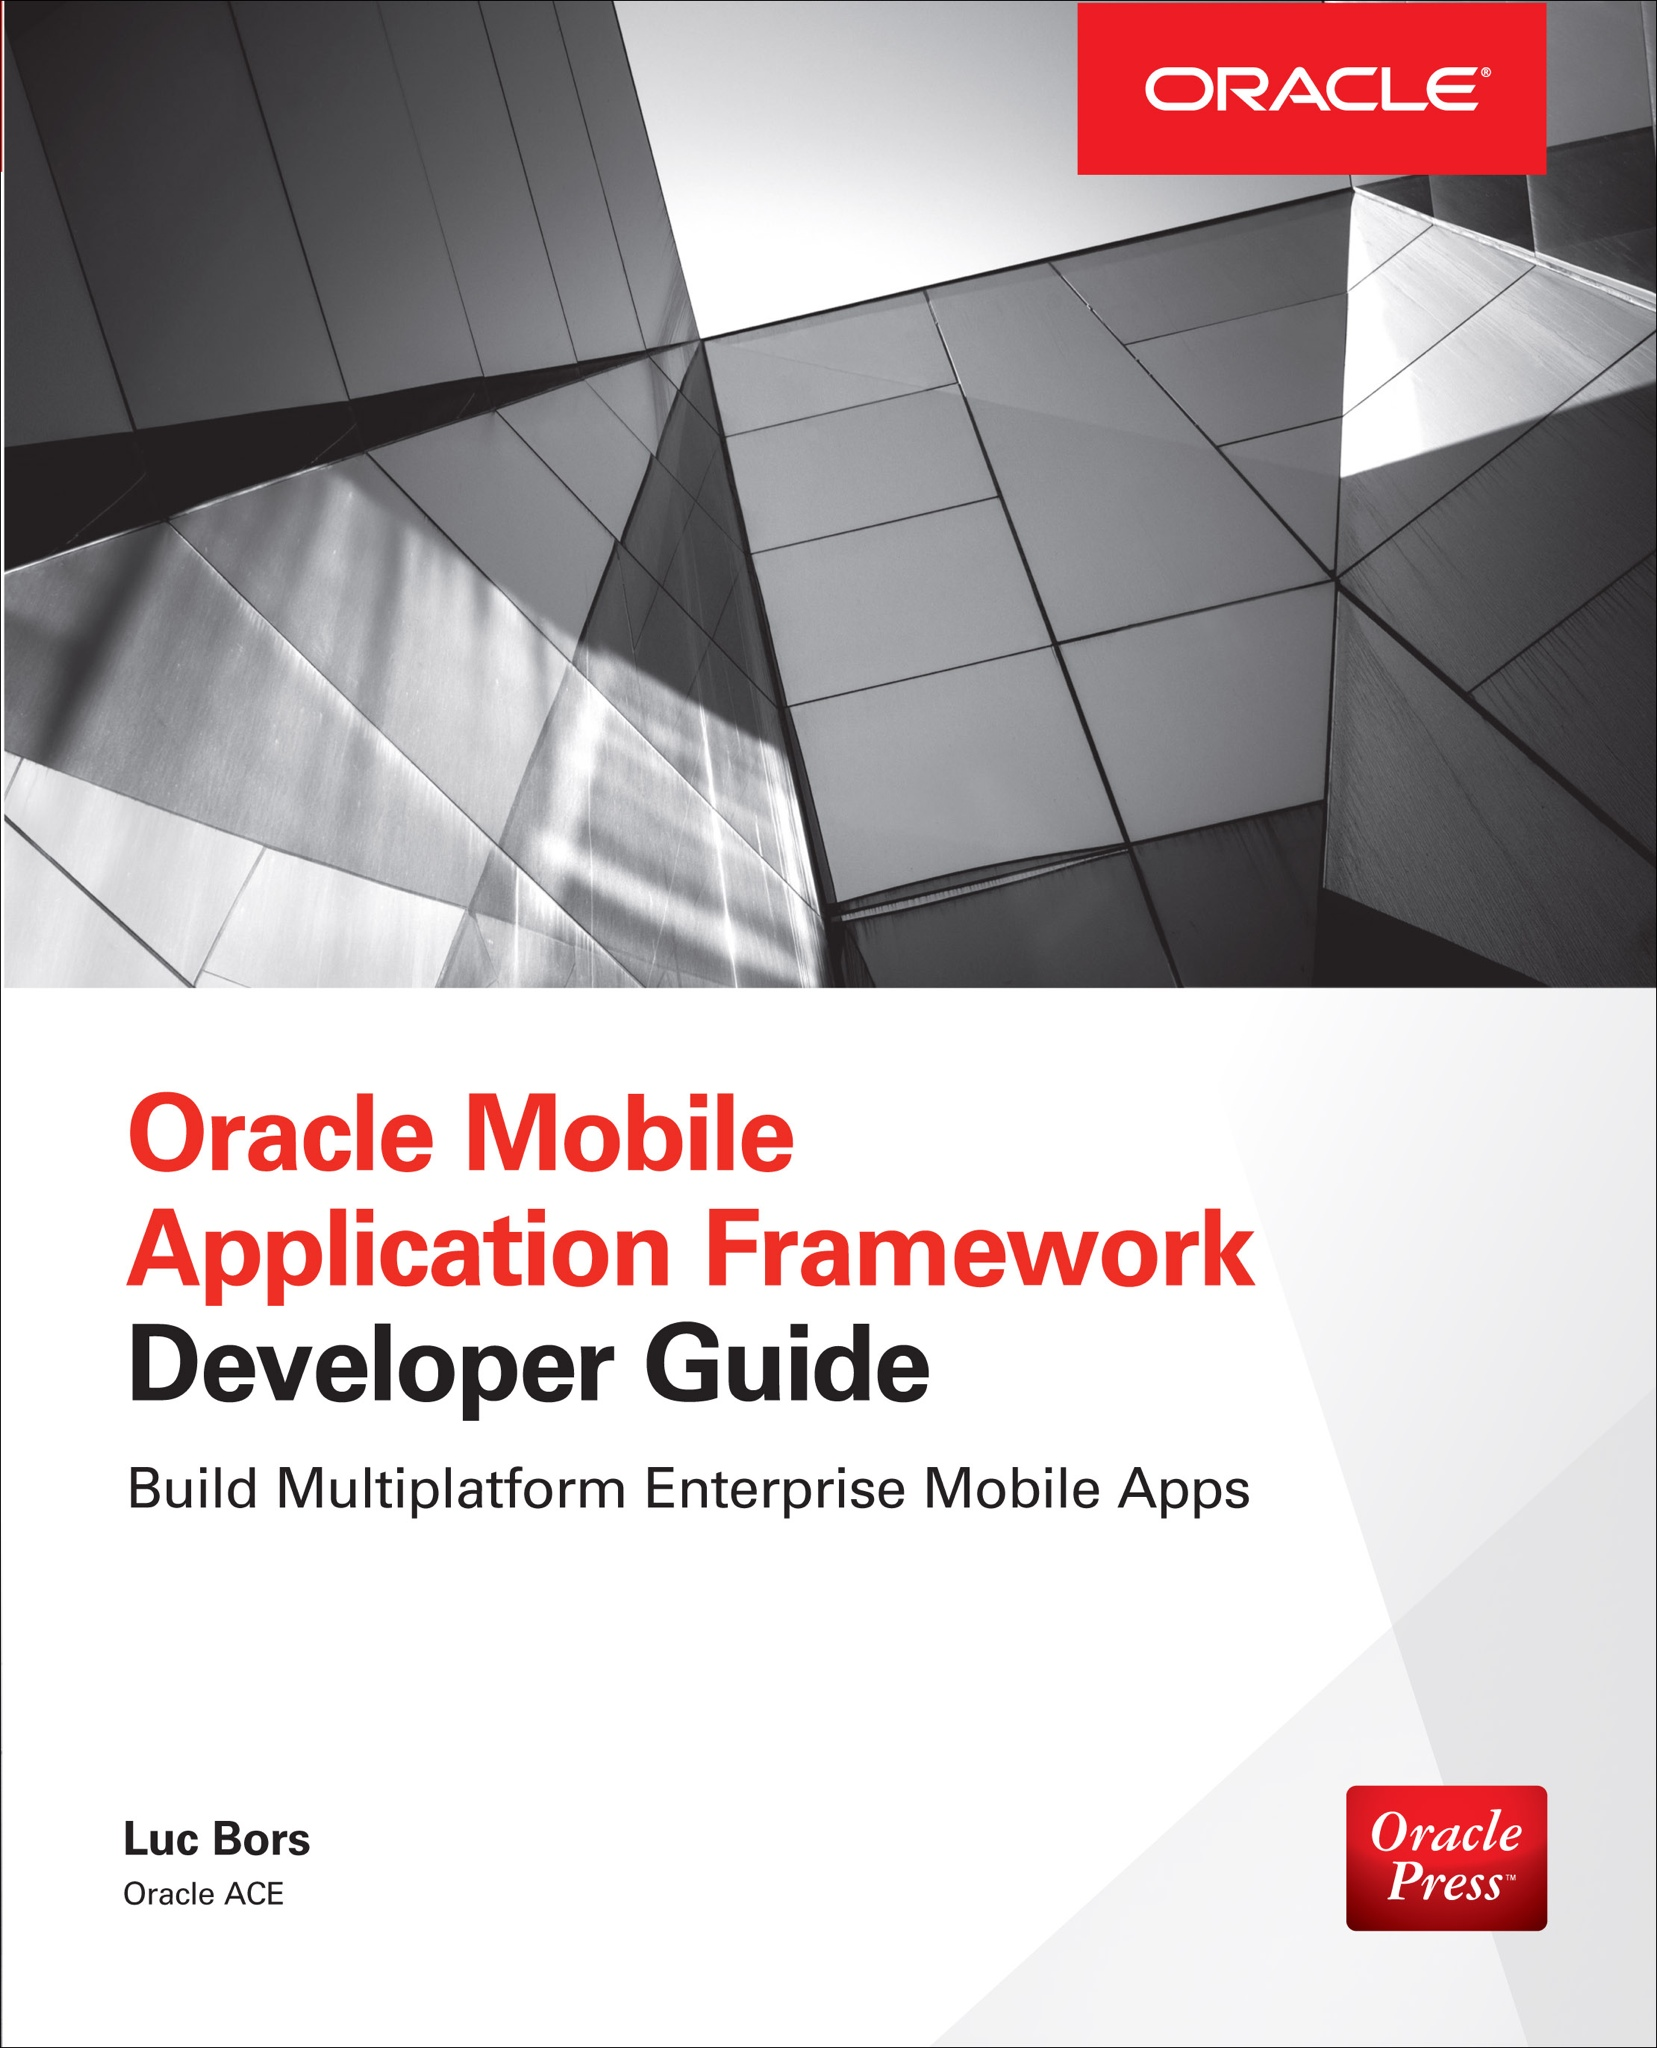 book oracle mobile application framework developer guide amis rh technology amis nl oracle application framework developer's guide oracle application framework developer's guide pdf